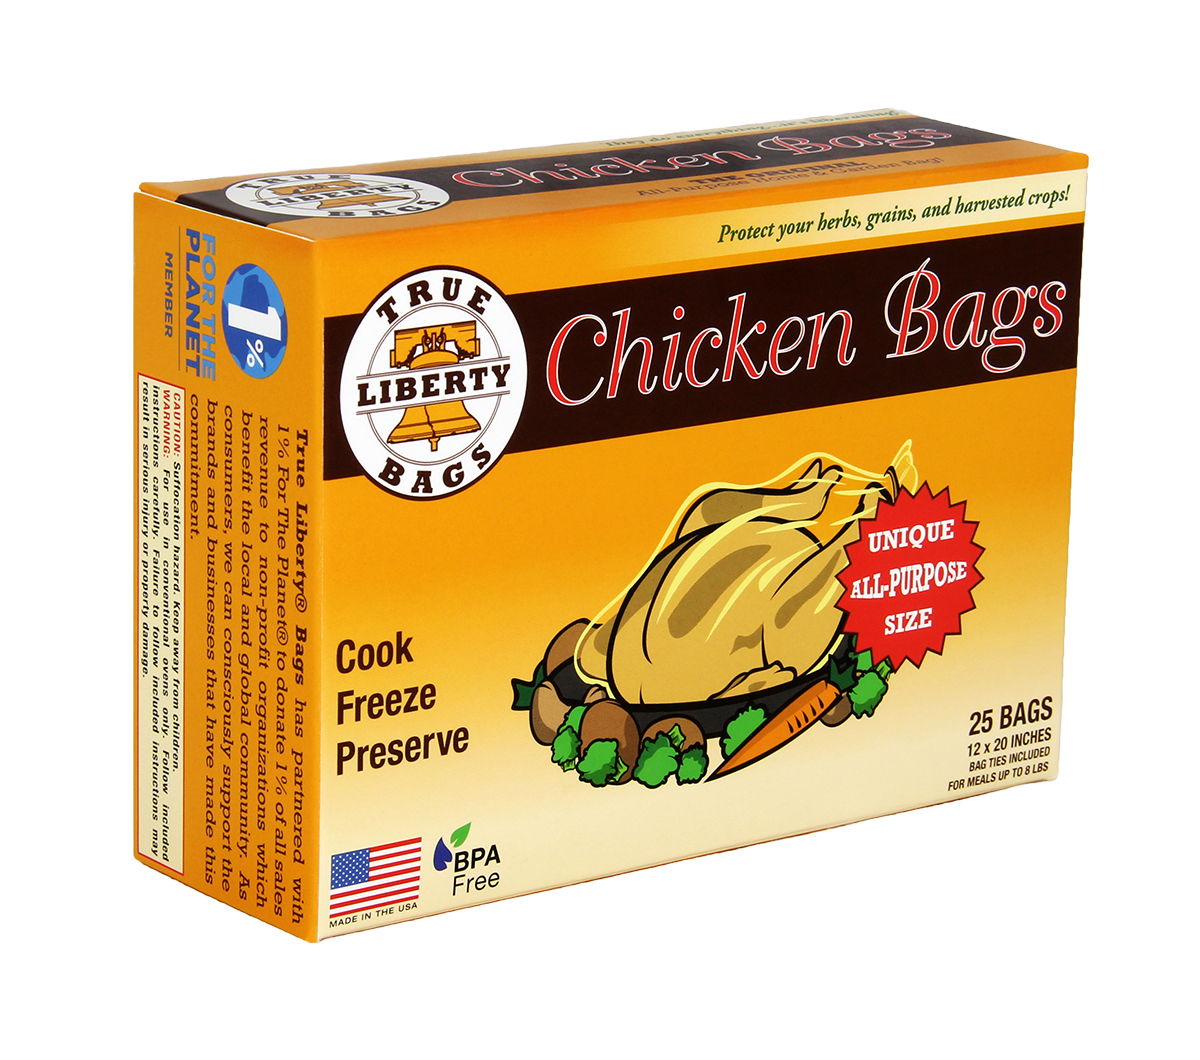 True Liberty Chicken Bags Pack of 25